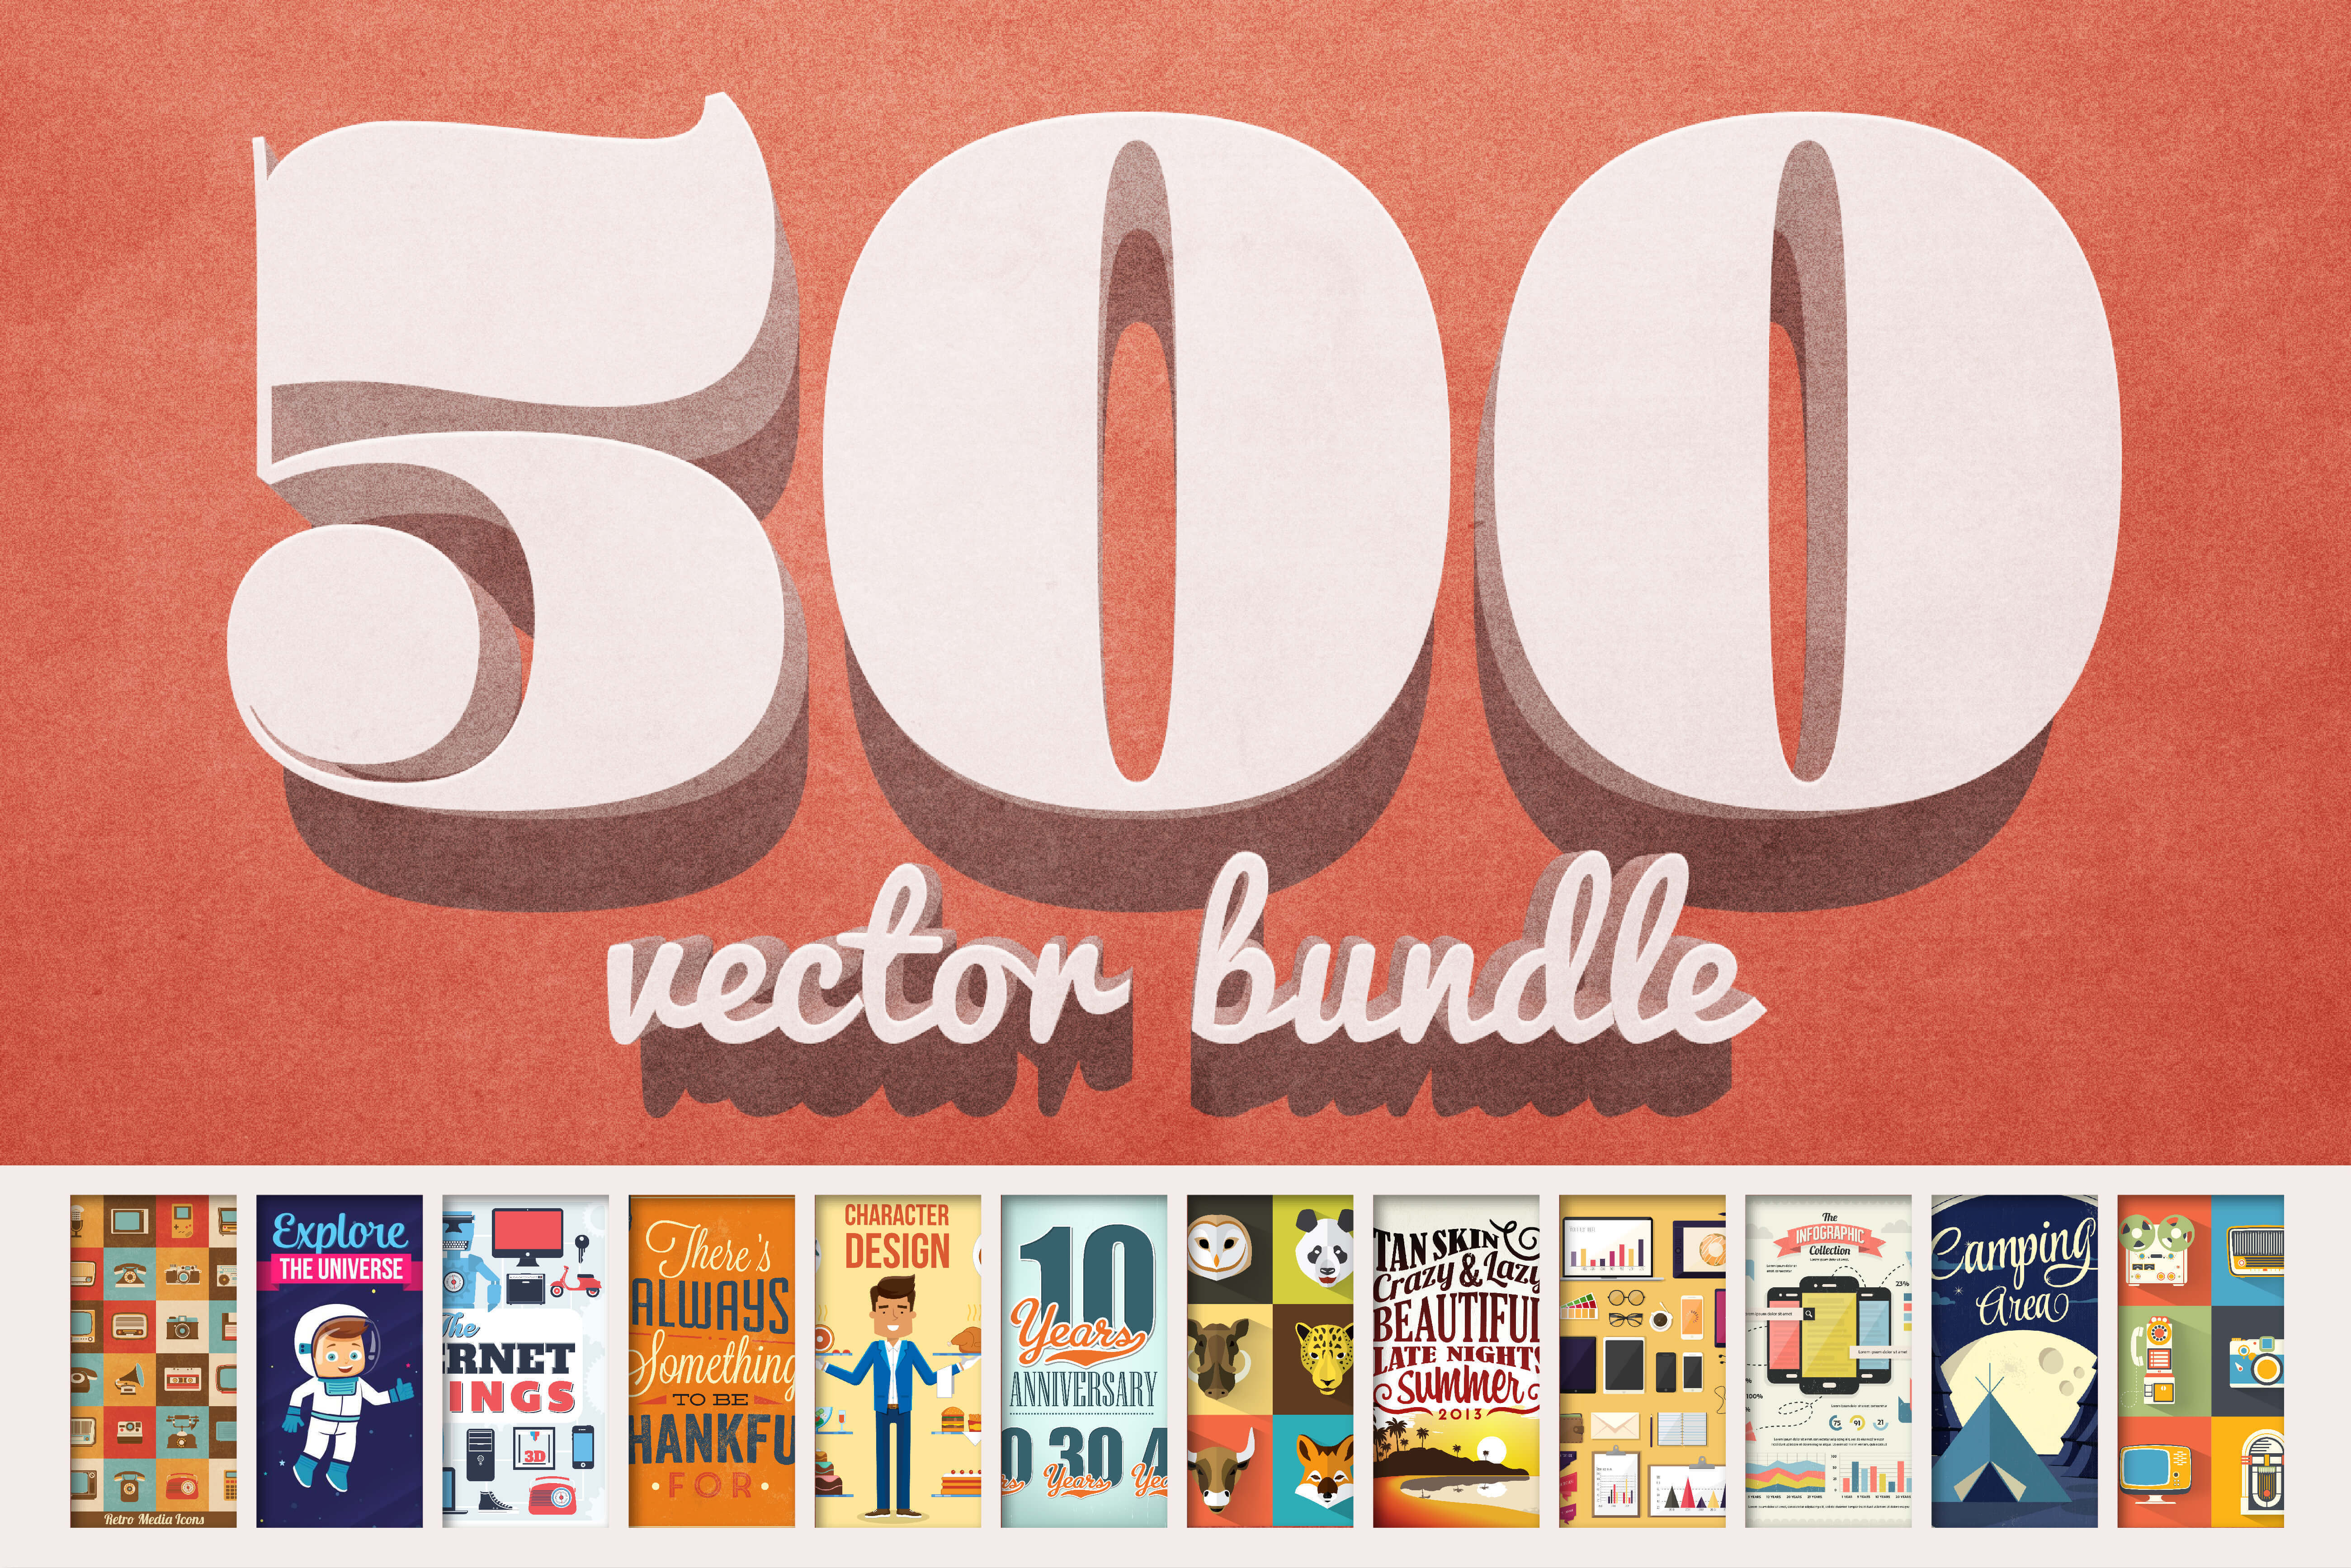 Vectorlicious Bundle: $2,500 Worth of Premium Quality Vectors - only $24!